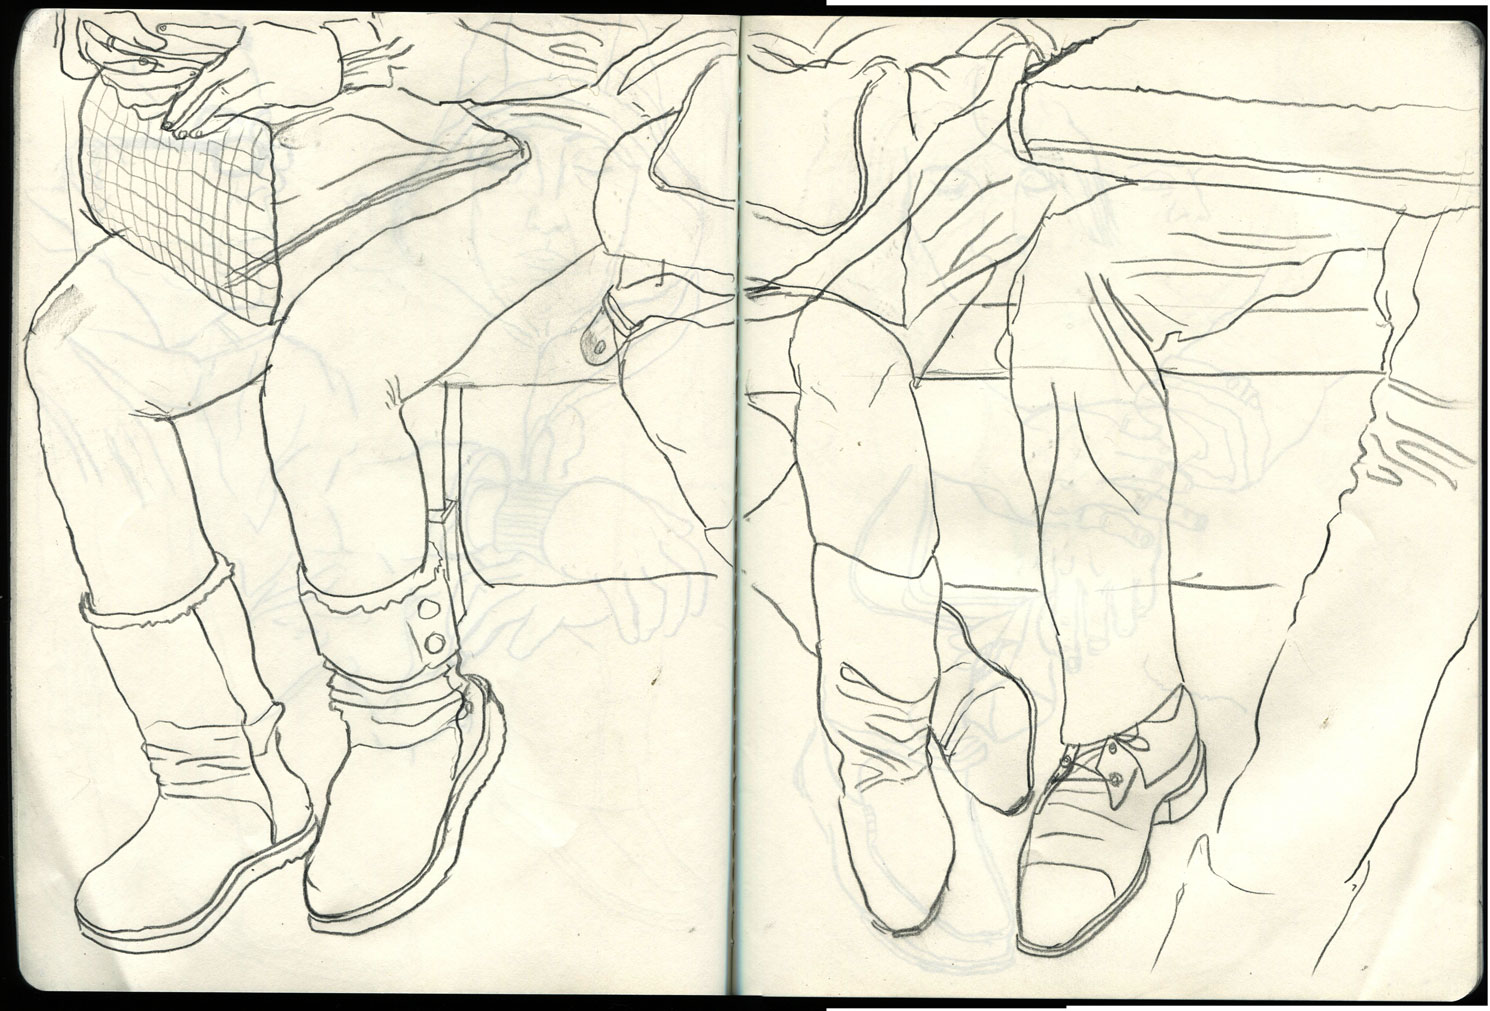 1490x1011 New York City Subway Train Drawings Breaking In A New Sketchbook